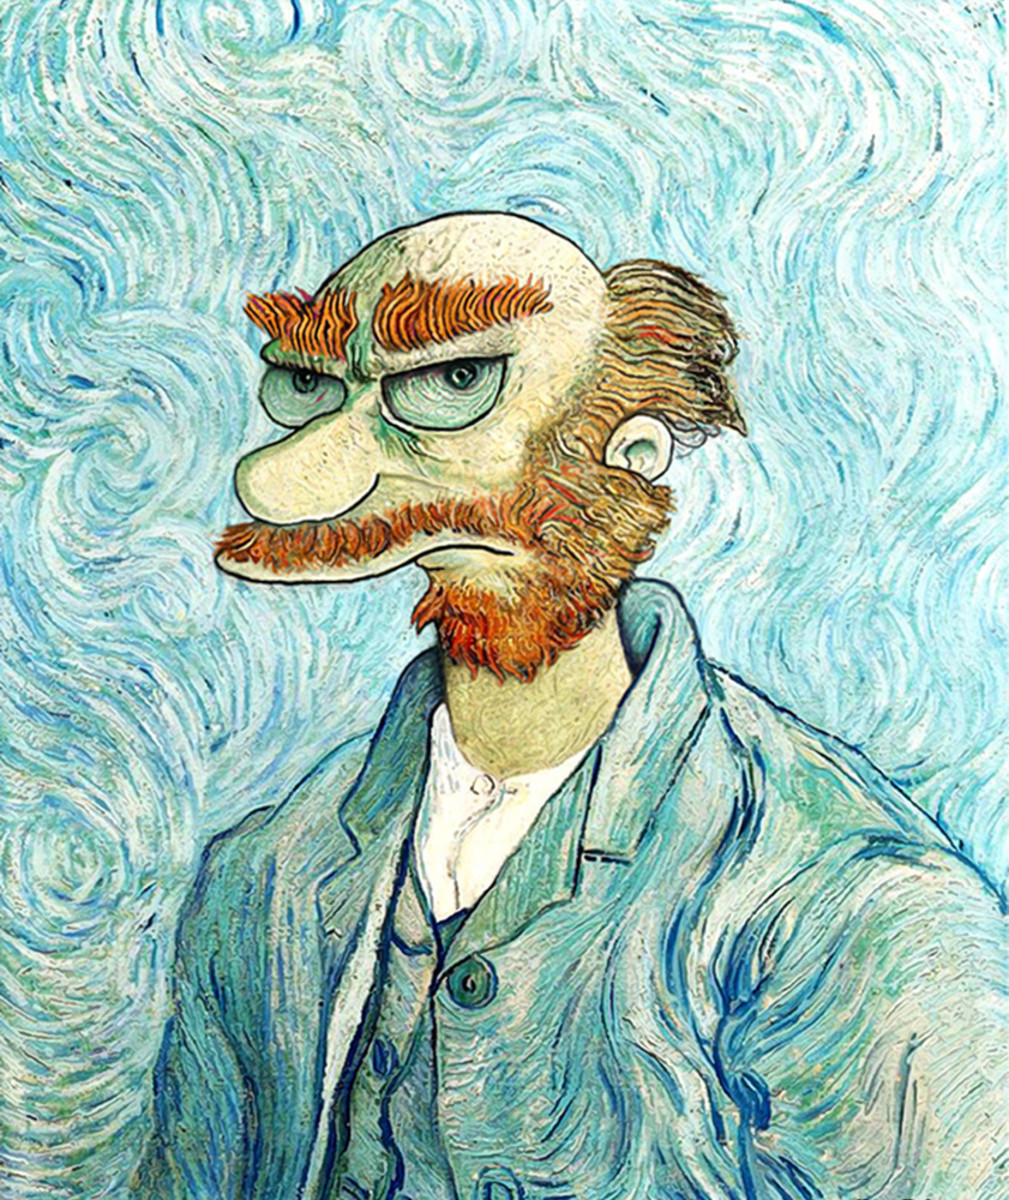 Groundskeeper Willie from the Simpsons as Van Gogh painted by David Barton